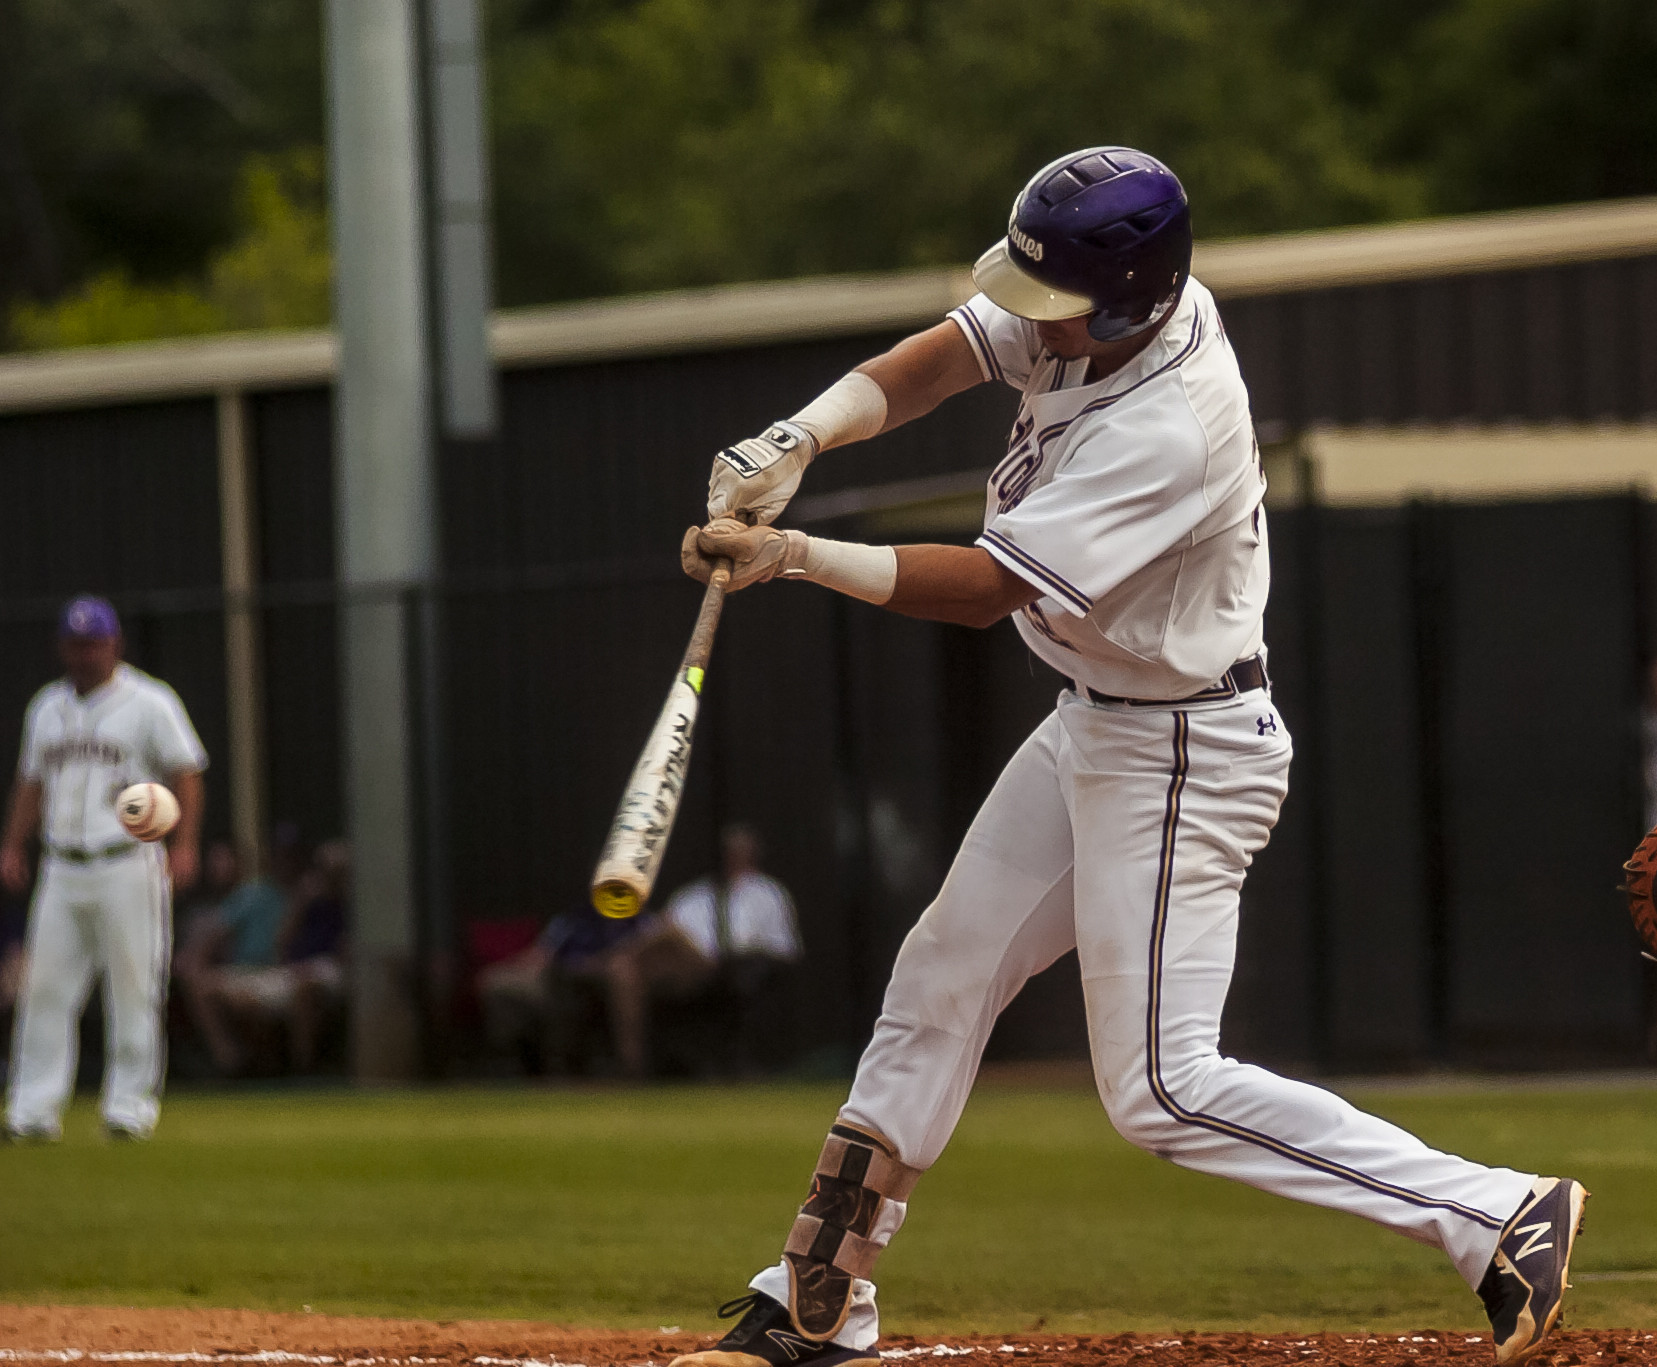 Cartersville's Devin Warner doubles during Game 1 of the Class 4A state playoff series at Richard Bell Field against Heritage on May 15. Warner was selected in the 30th round Wednesday in the MLB Draft.